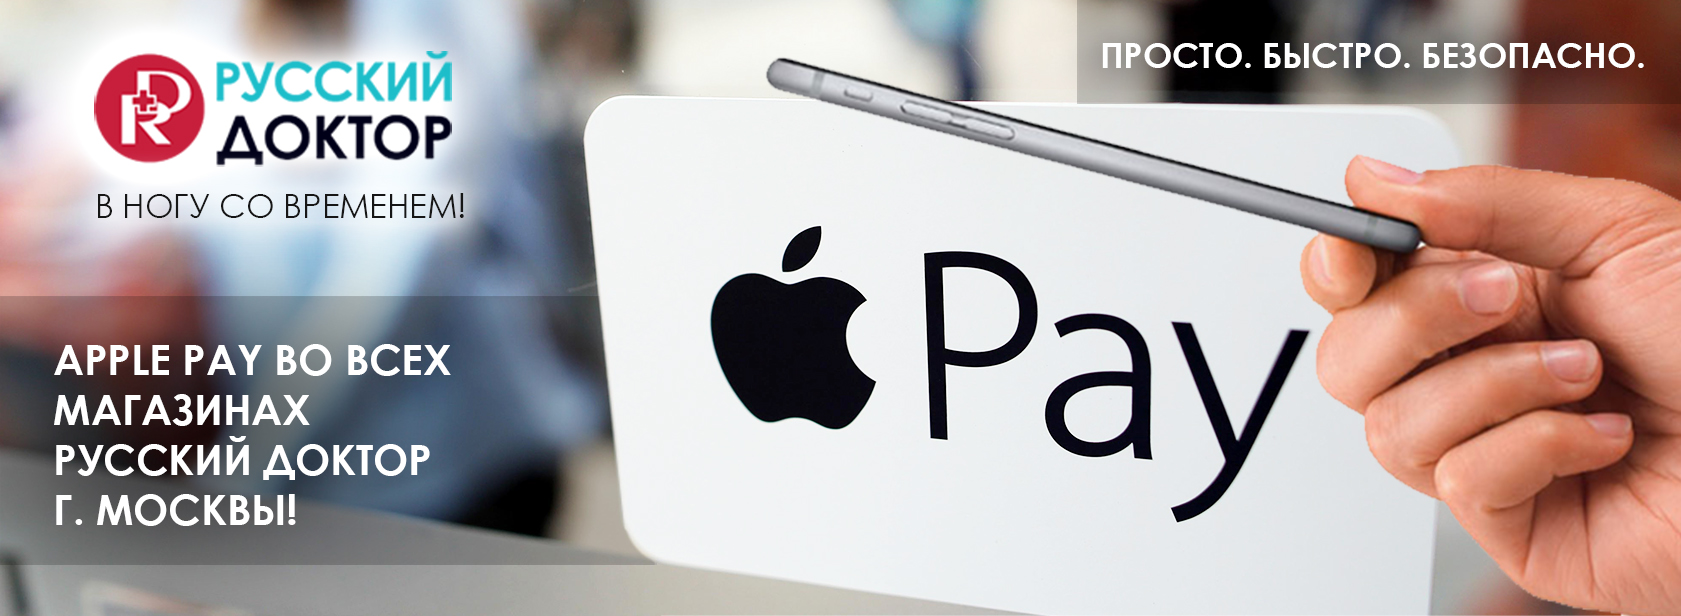 Apple Pay - теперь и в Русском Докторе!